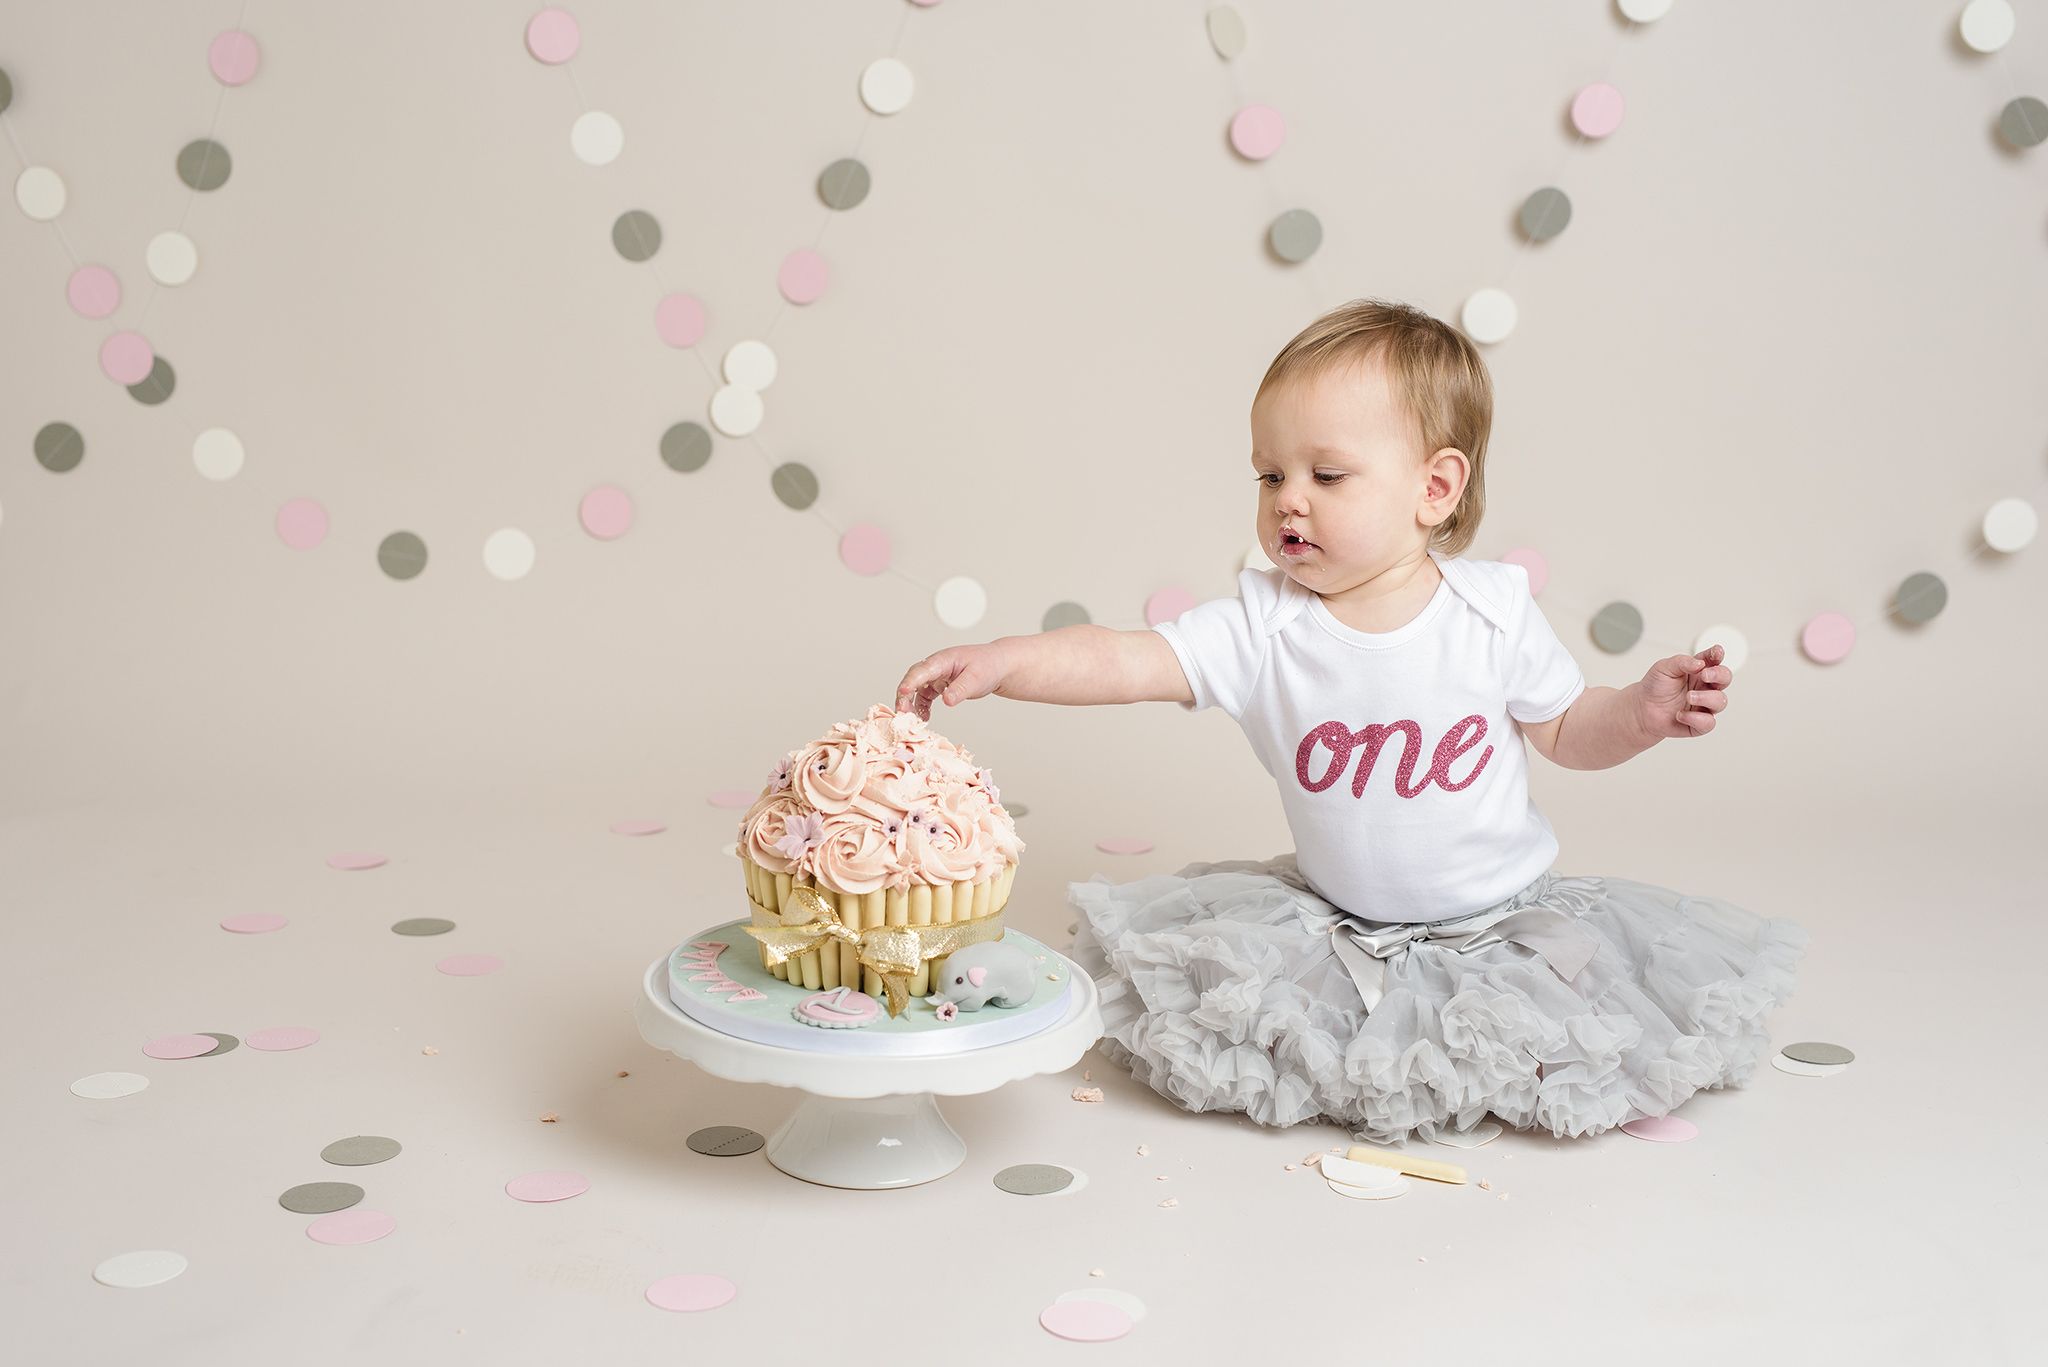 Little girl in grey tutu reaching for her cake | Cake Smash Photographer Aylesbury Buckinghamshire and Thame Oxfordshire